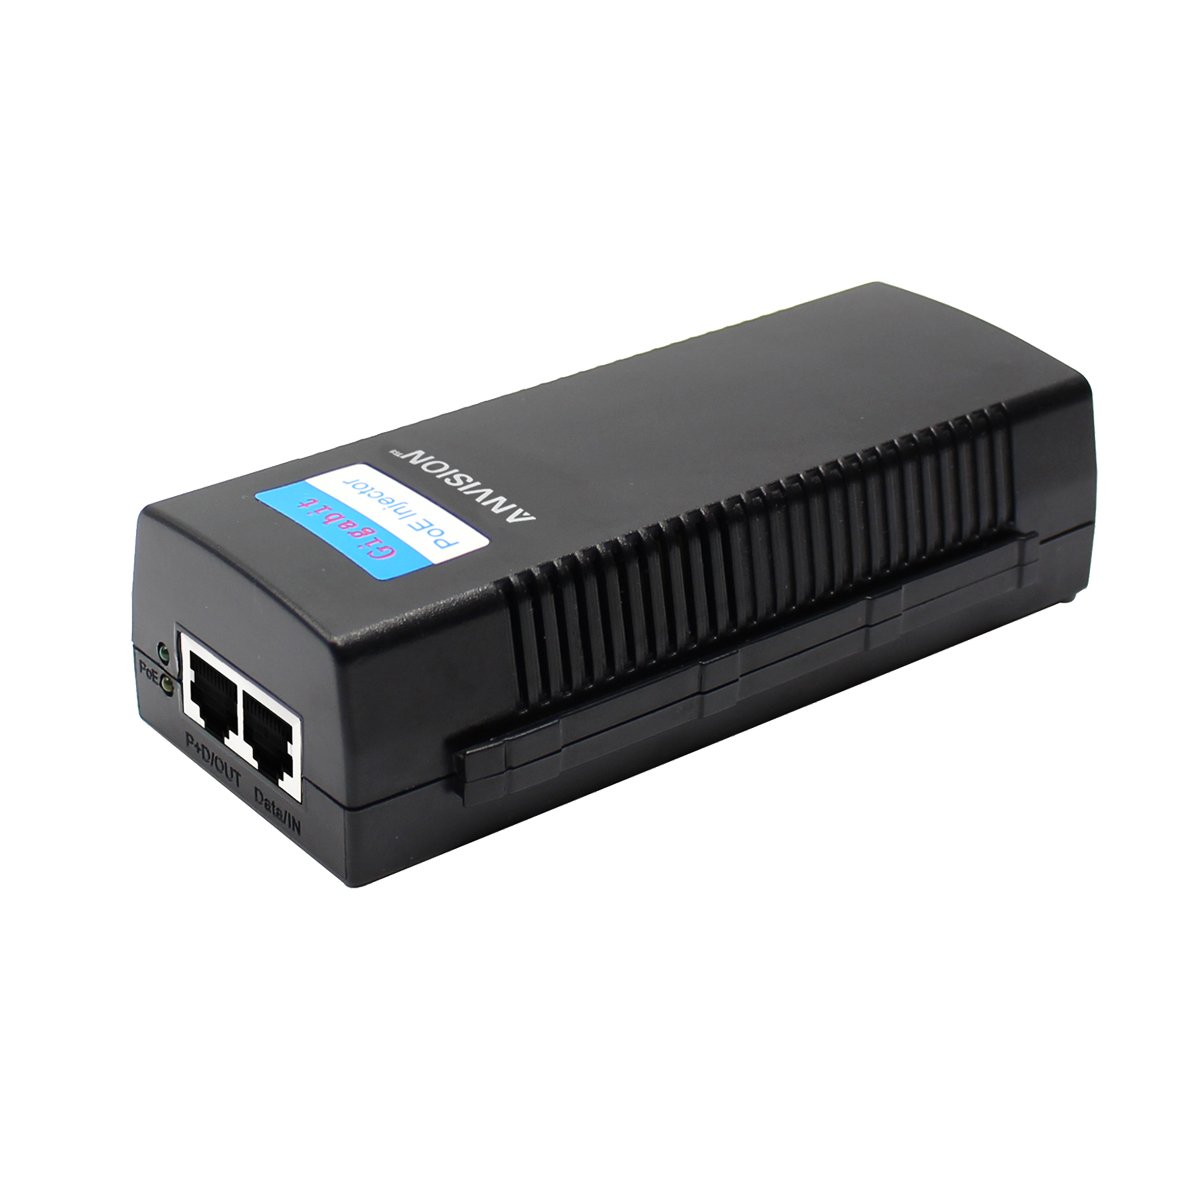 ANVISION 48V 0.8A Gigabit PoE Injector Power Supply Adapter with AC Cord, IEEE 802.3af/at Compliant, for IP Voip Phones, Cameras, AP and More by ANVISION